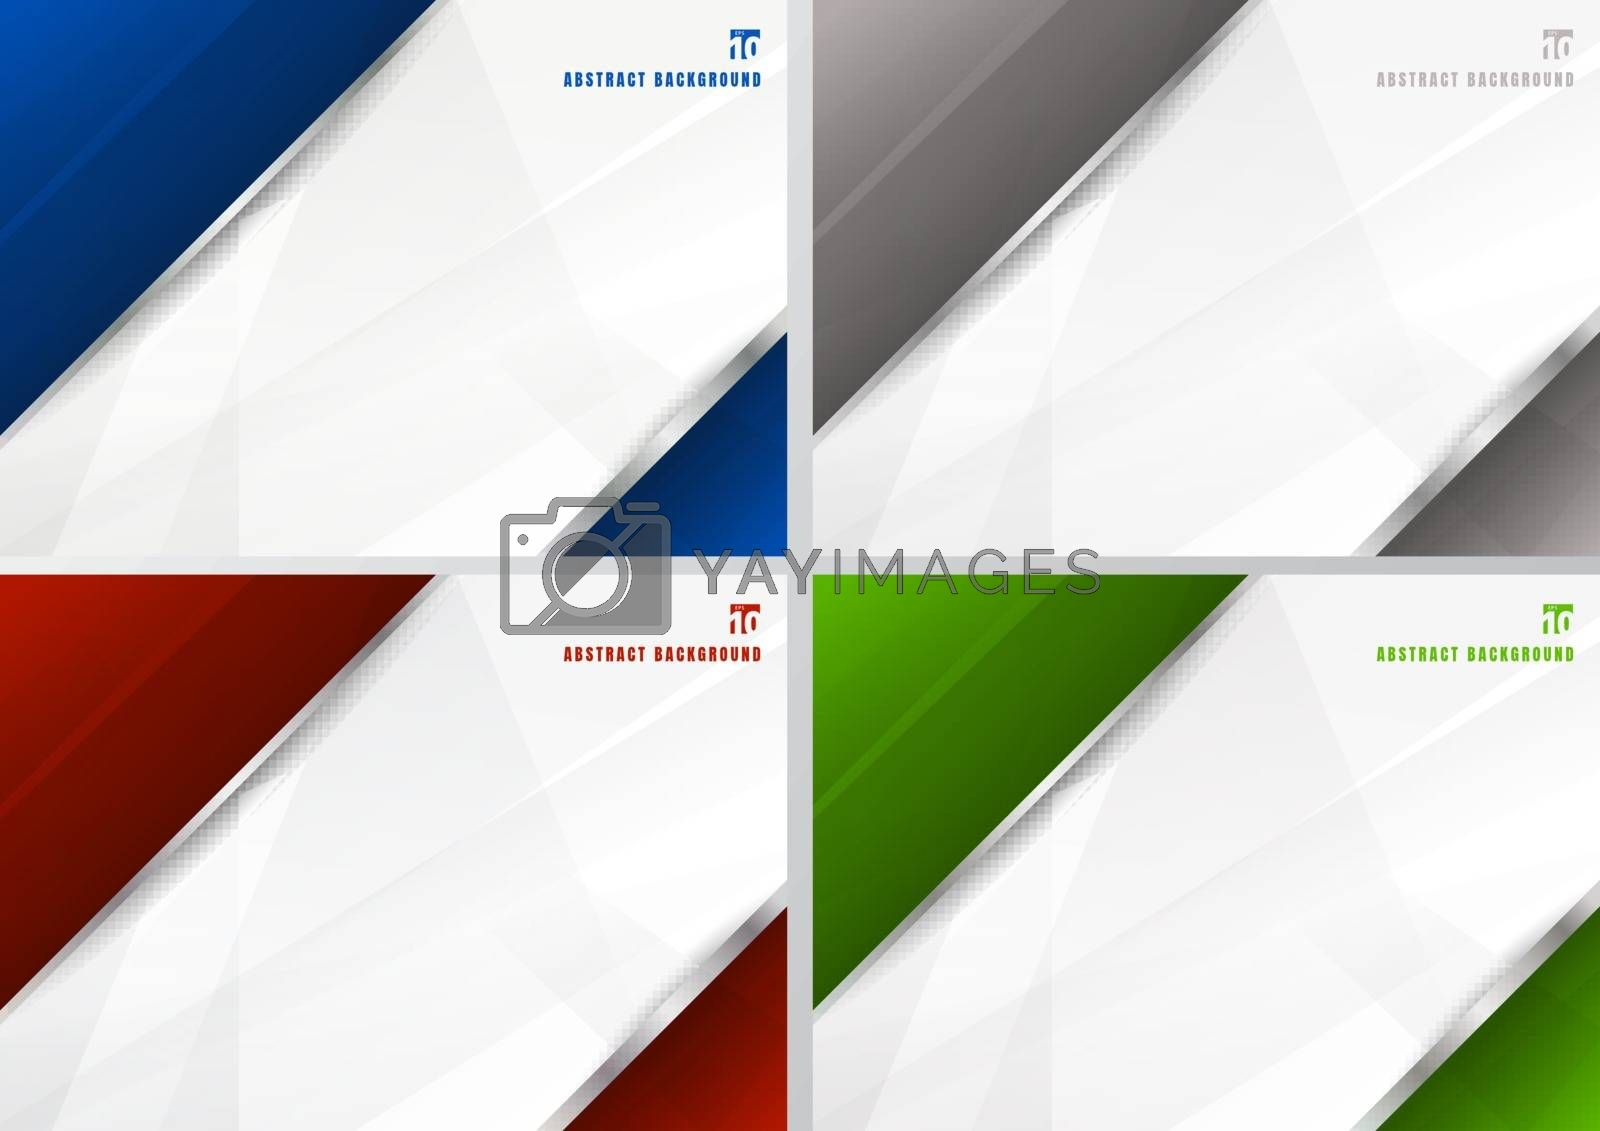 Set of abstract template blue, gray, red and green with white diagonal overlapping layers background with with silver line decoration. technology futuristic concept. You can use for brochure cover design, banner web, print ad, presentation, etc. Vector illustration